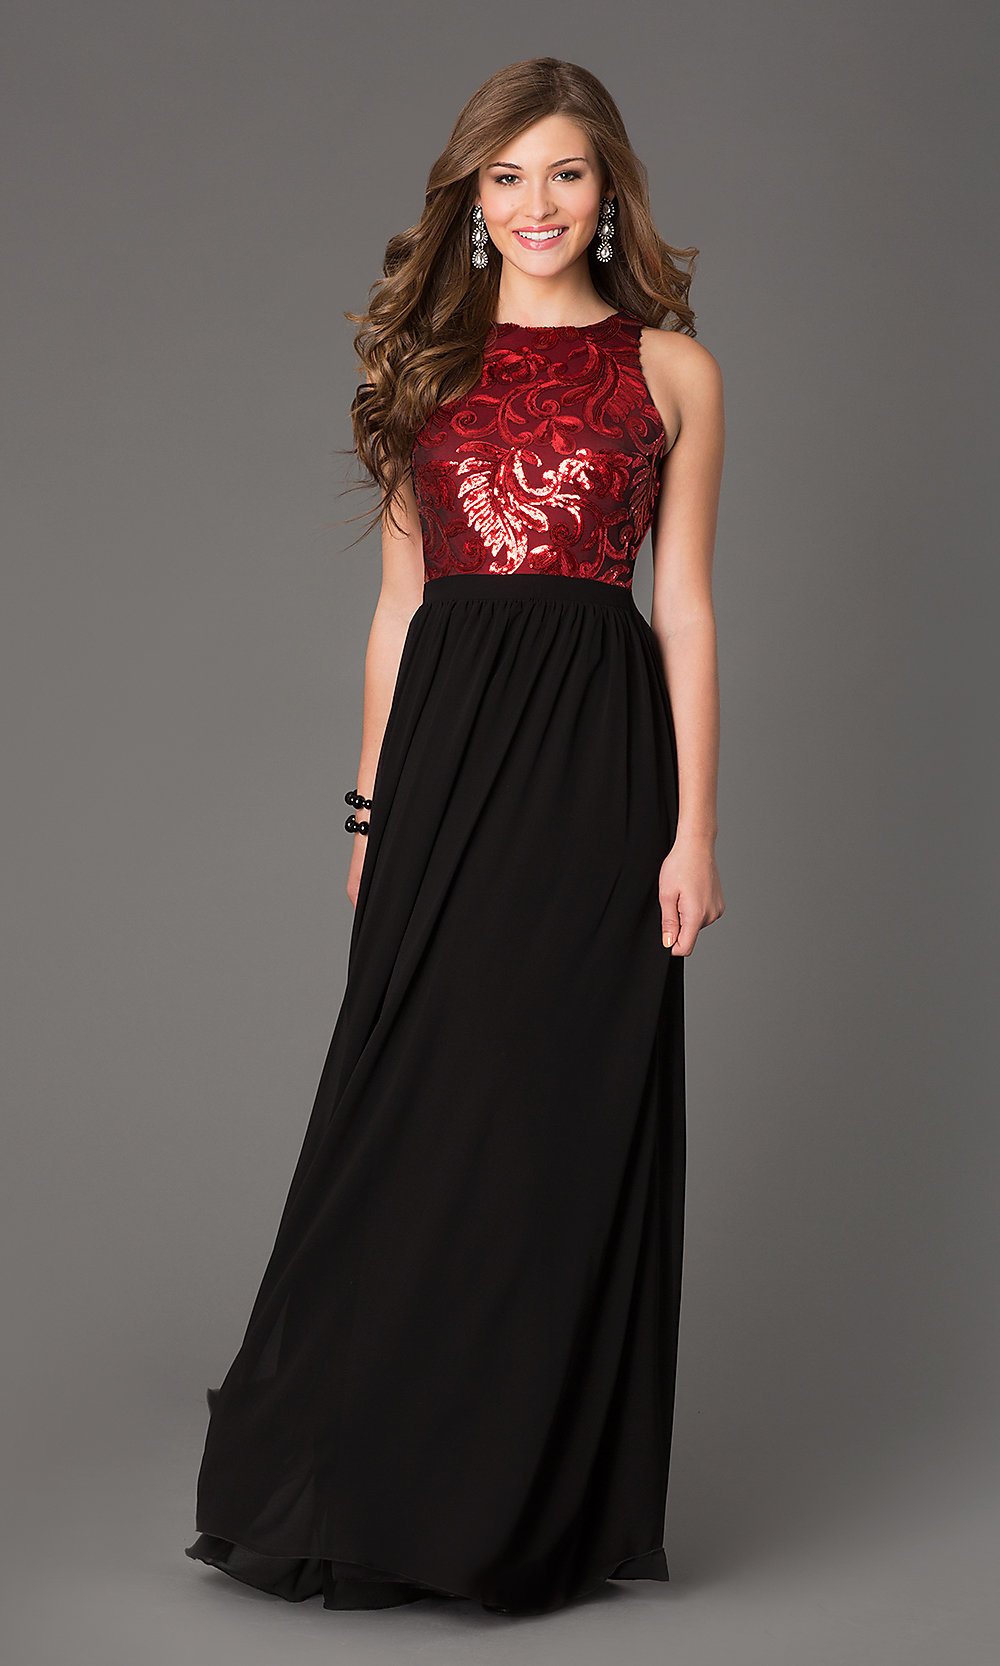 Cheap prom dresses in lansing mi fashion dresses cheap prom dresses in lansing mi ombrellifo Images